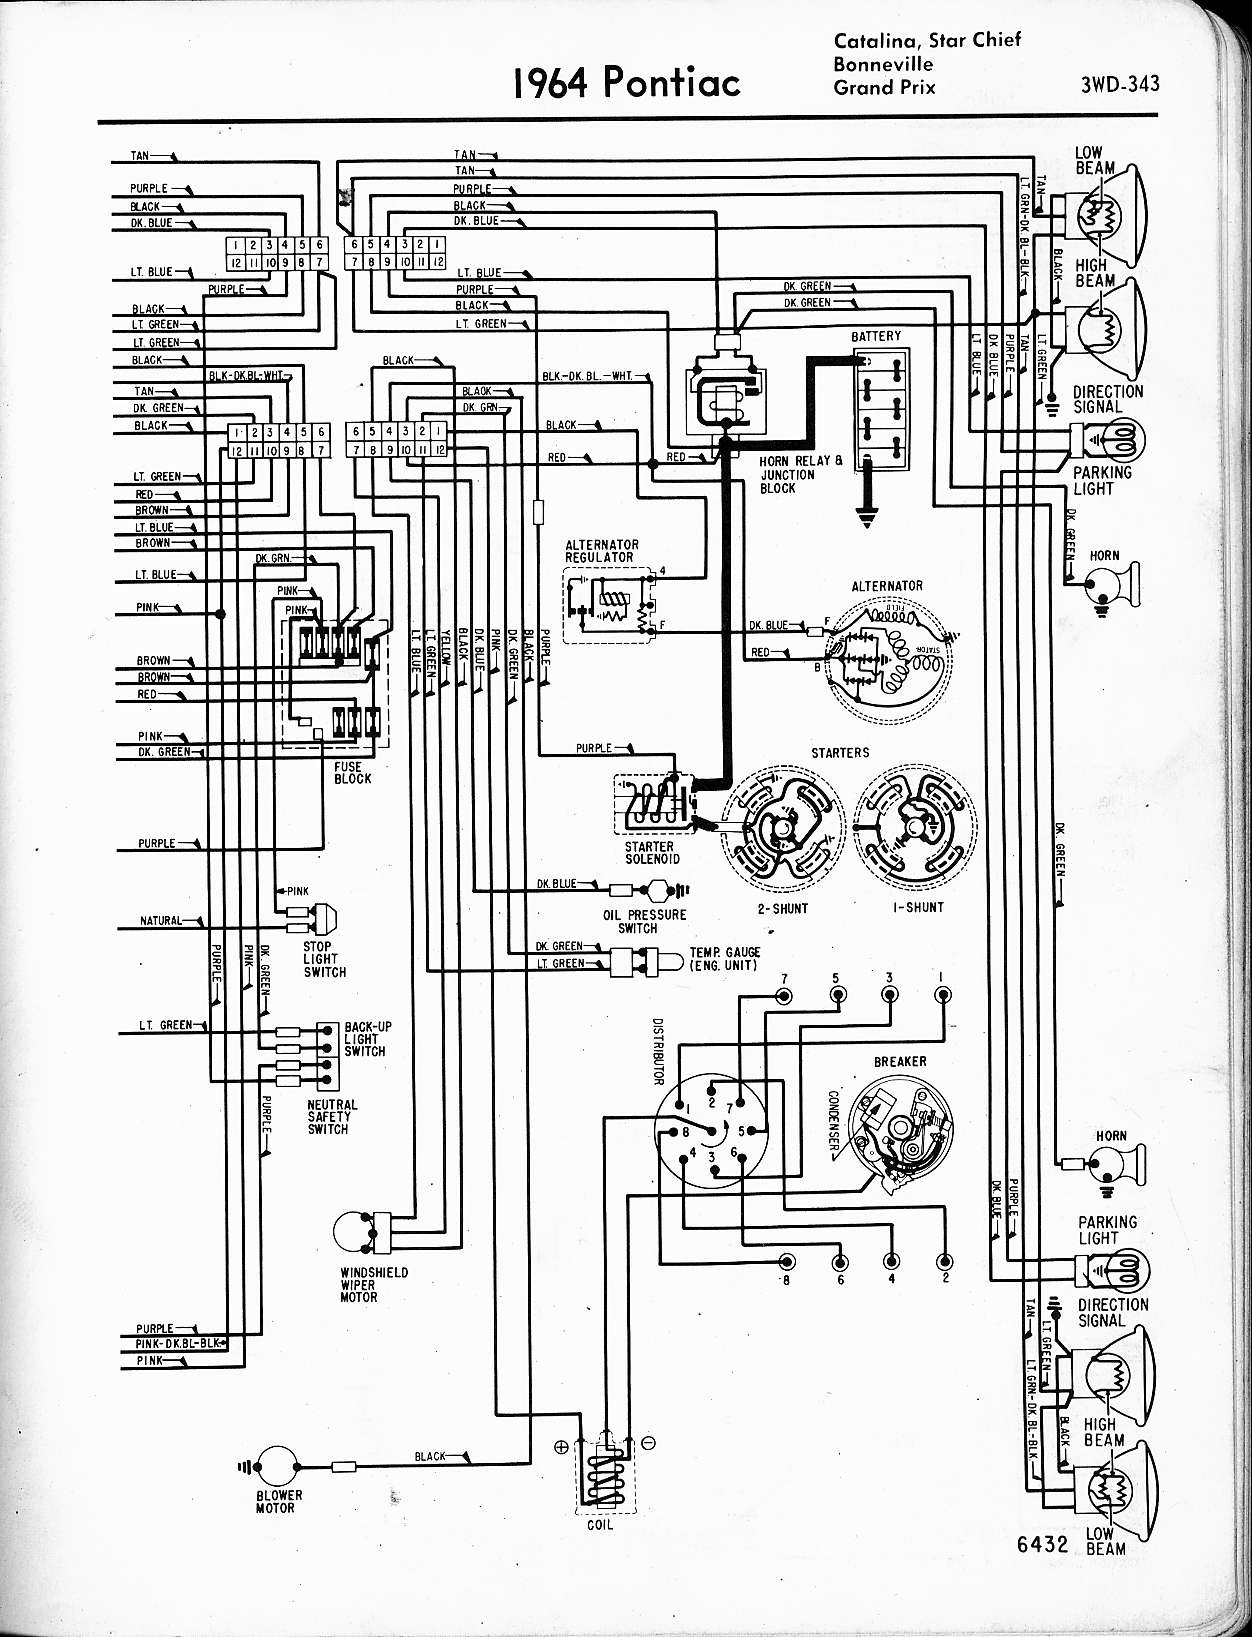 68 Firebird Ignition Switch Wiring on 1968 mustang neutral safety switch wiring diagram